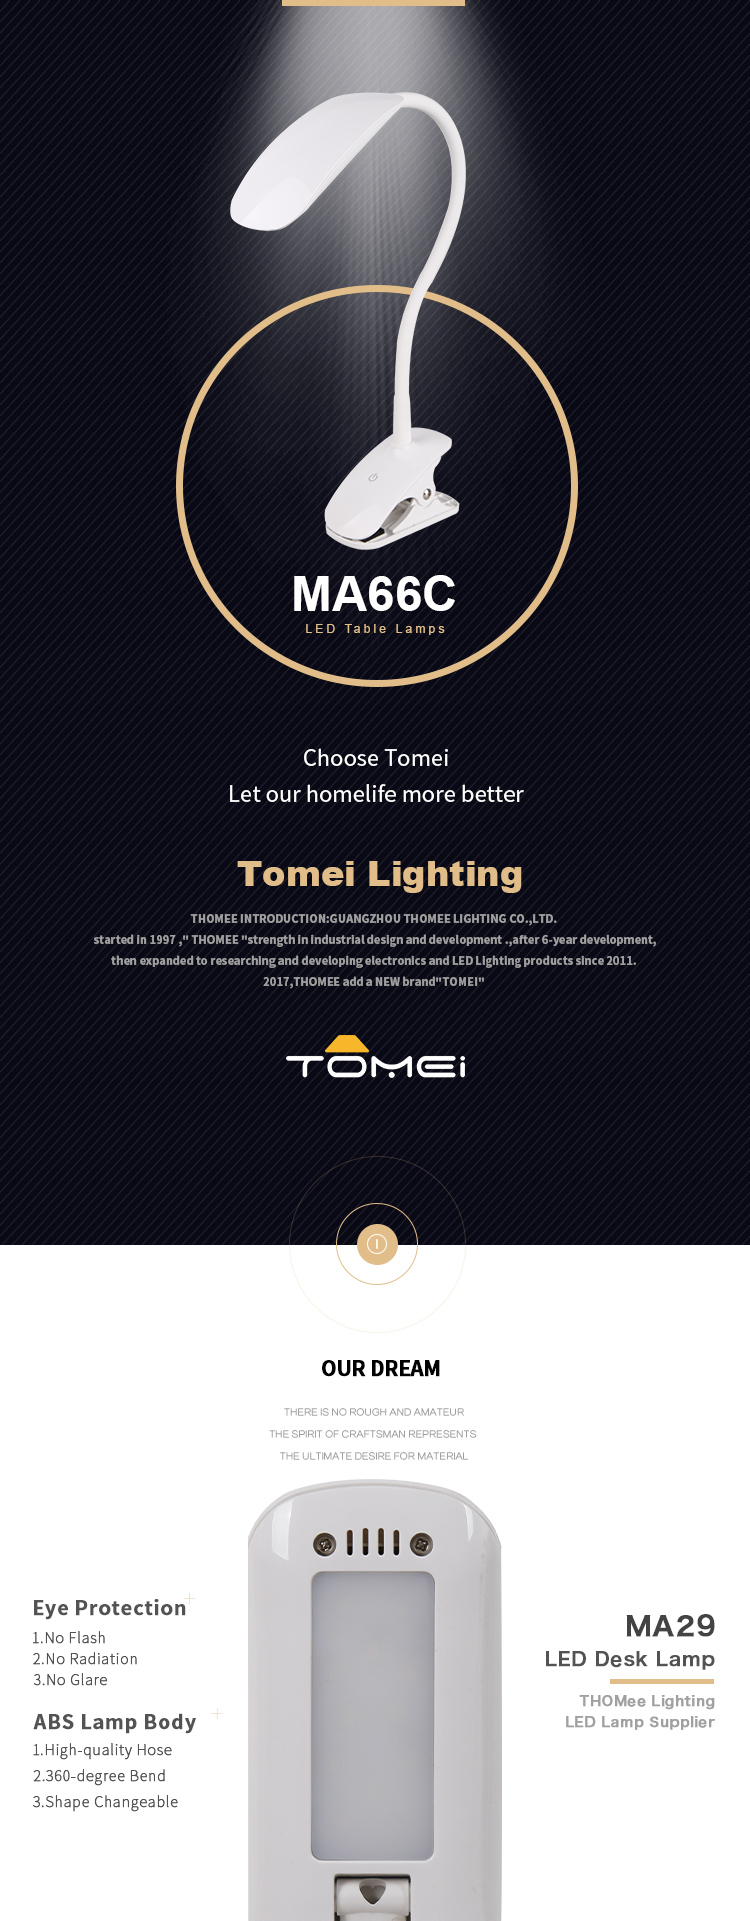 TOMEI Dimmable And Flexible LED Clip Lamp Swing Arm Lamp For Table Desk Lighting